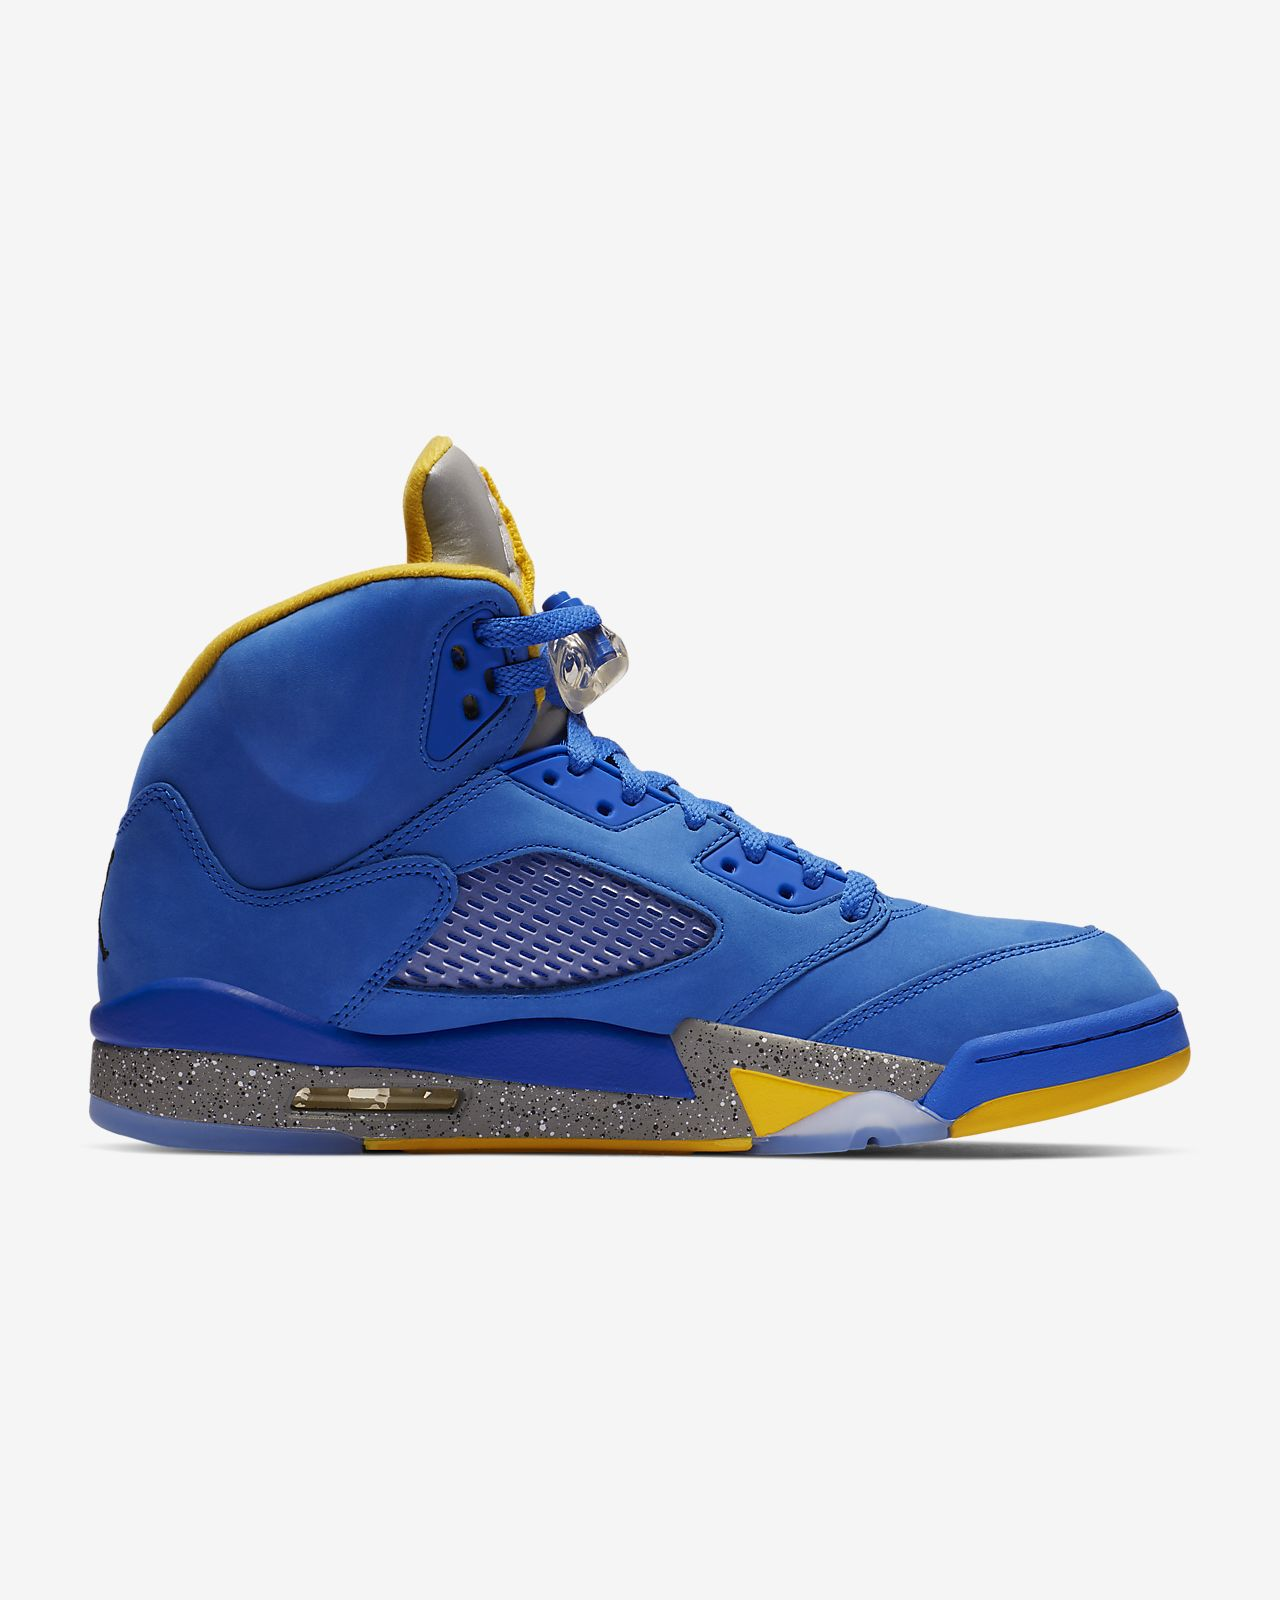 597a9556ac8d77 Air Jordan 5 Laney JSP Men s Shoe. Nike.com